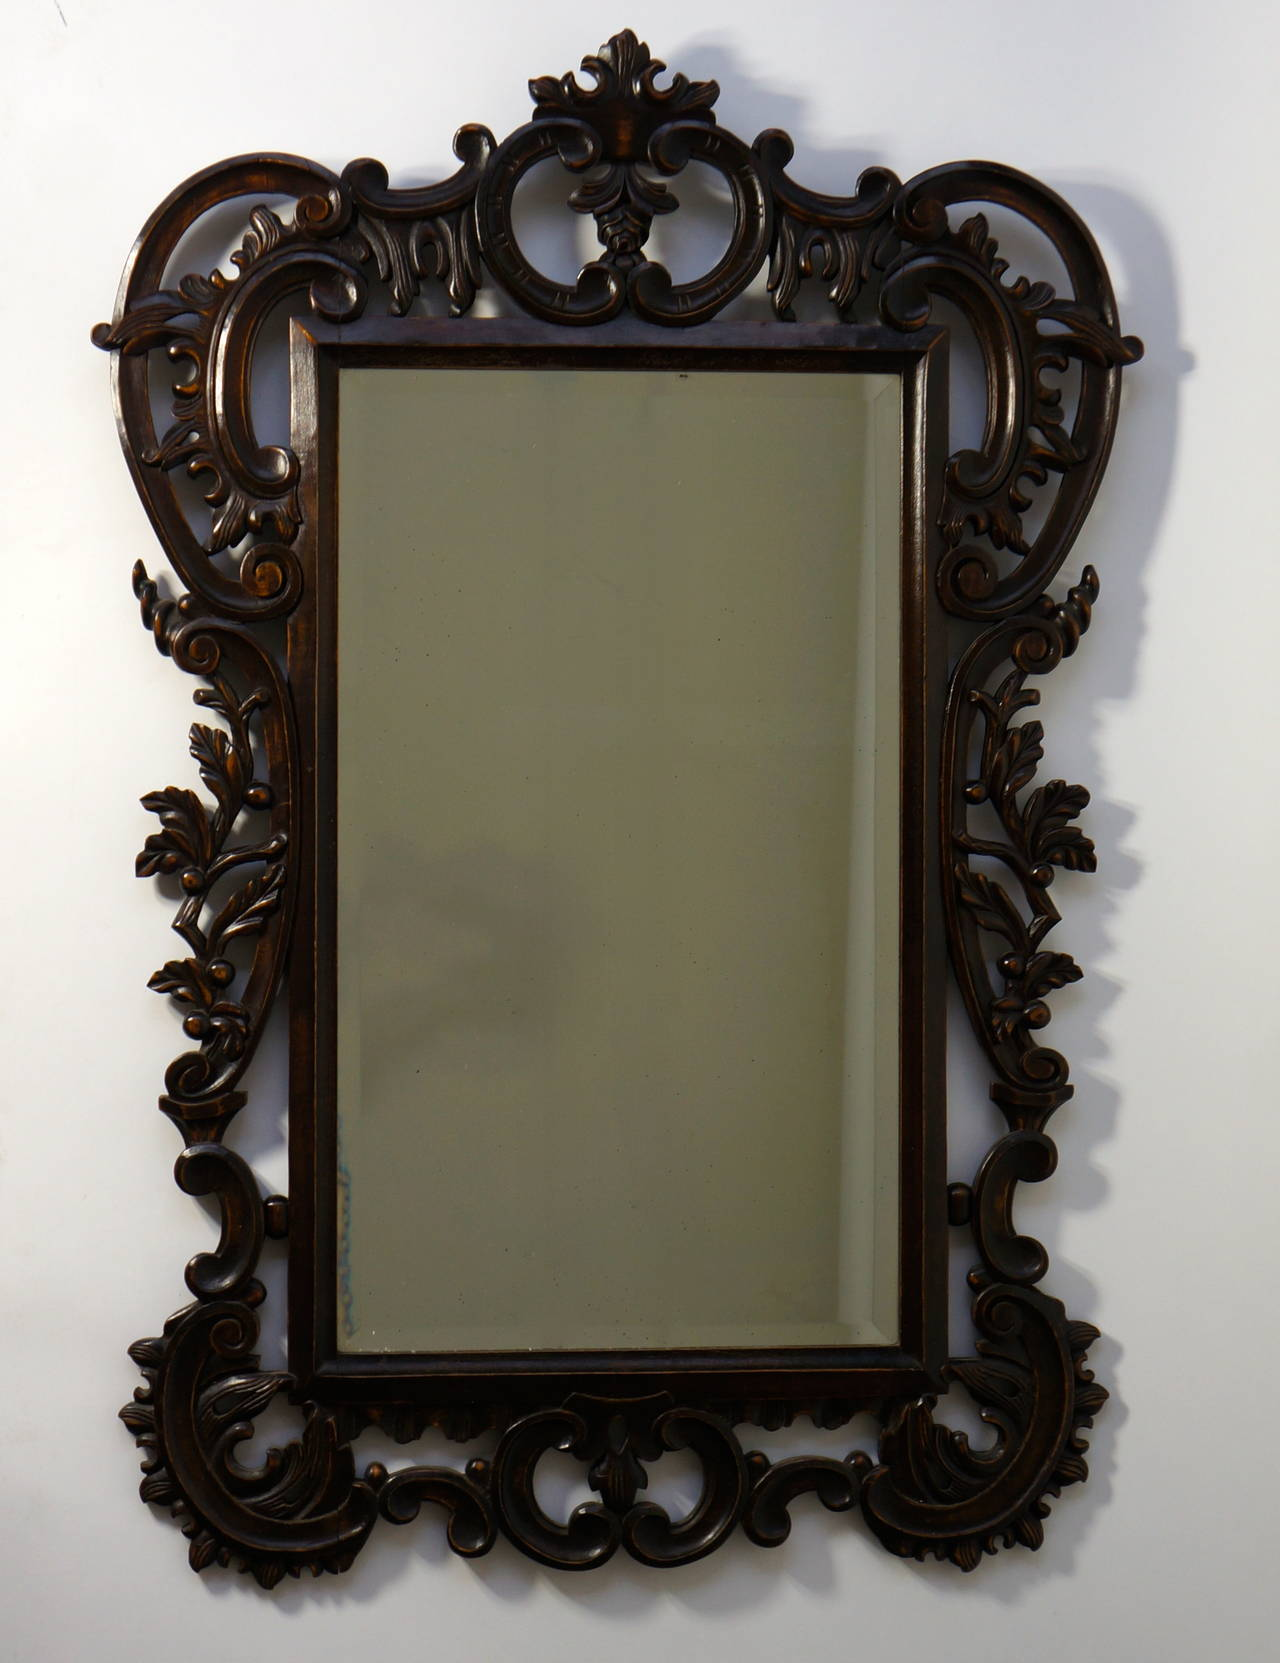 Large Carved Antique Wooden Mirror For Sale At 1stdibs: large wooden mirrors for sale